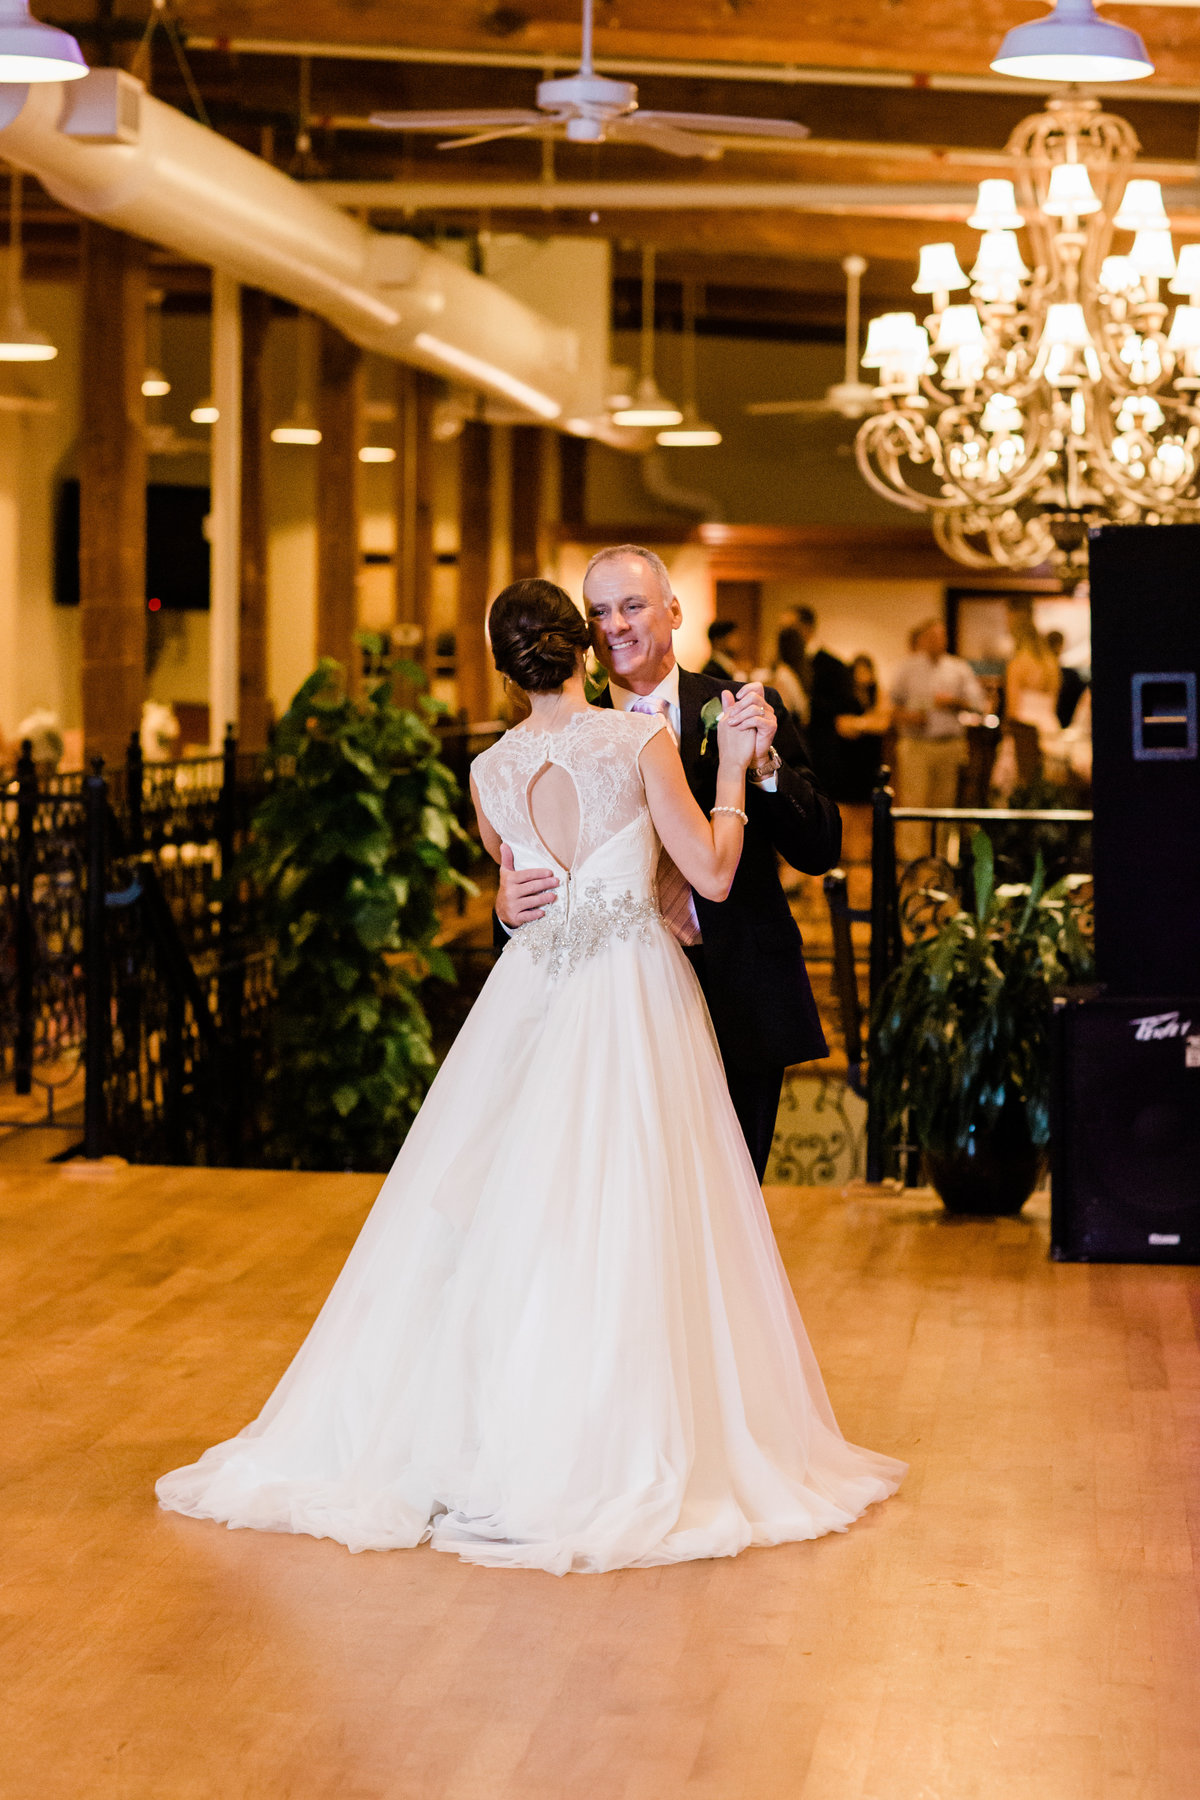 Danielle-Defayette-Photography-Revolution-Mill-Events-Wedding-Greensboro-NC-48